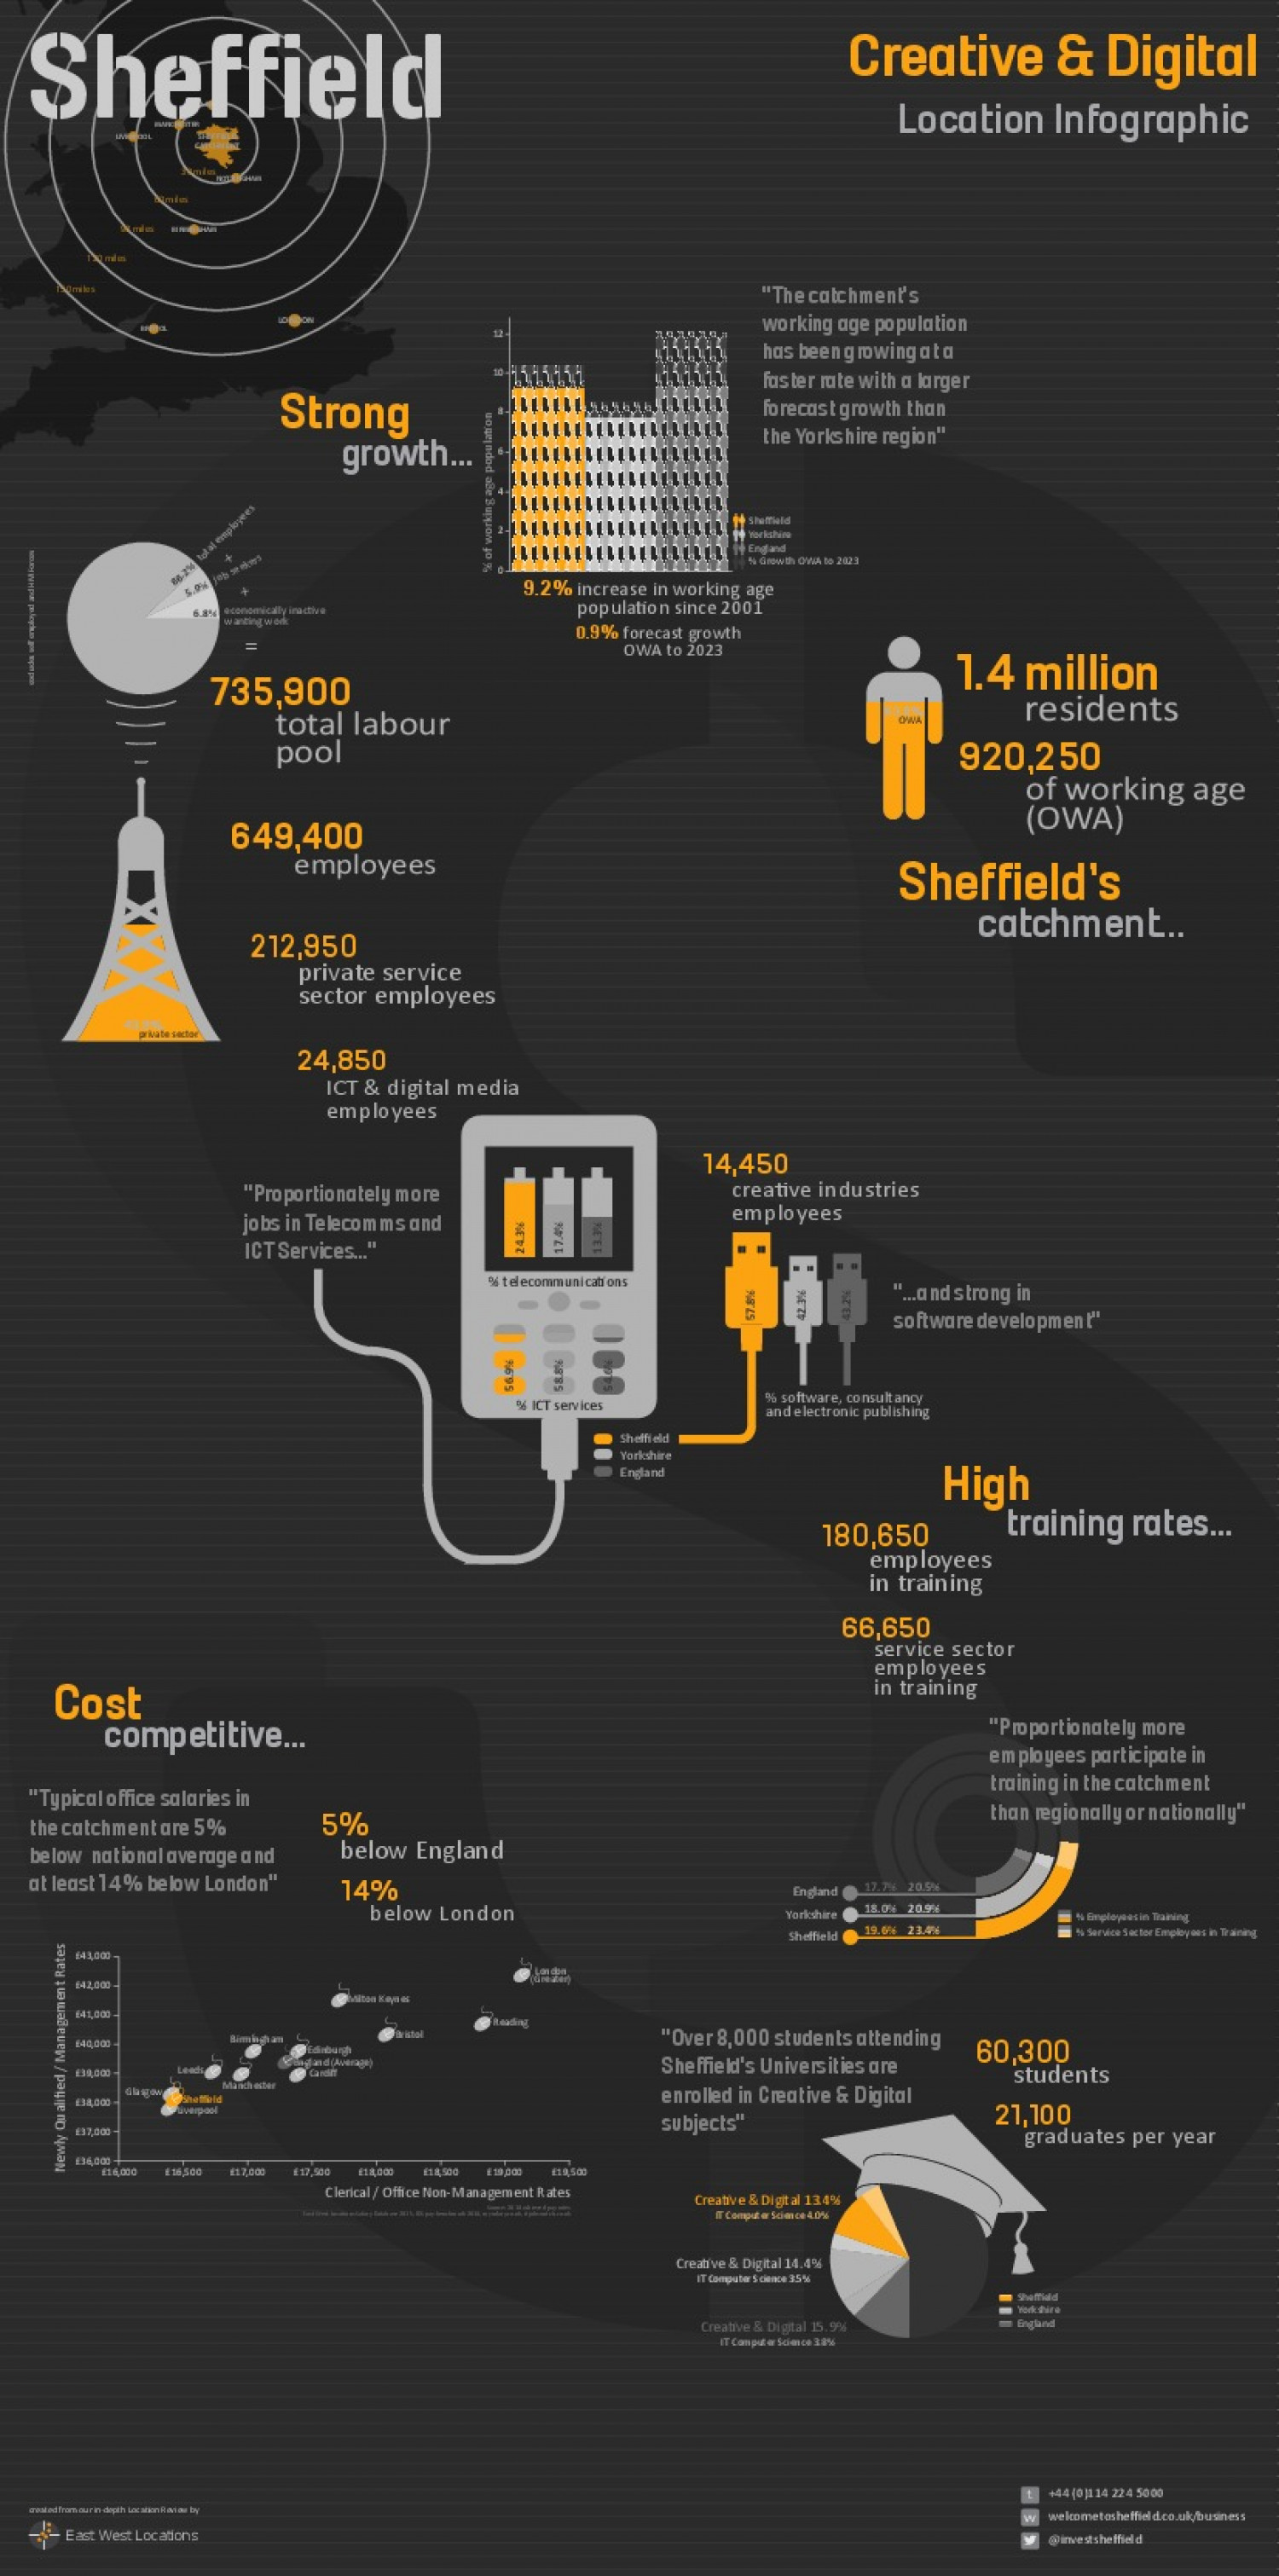 Sheffield Creative & Digital Economy 2015 Infographic